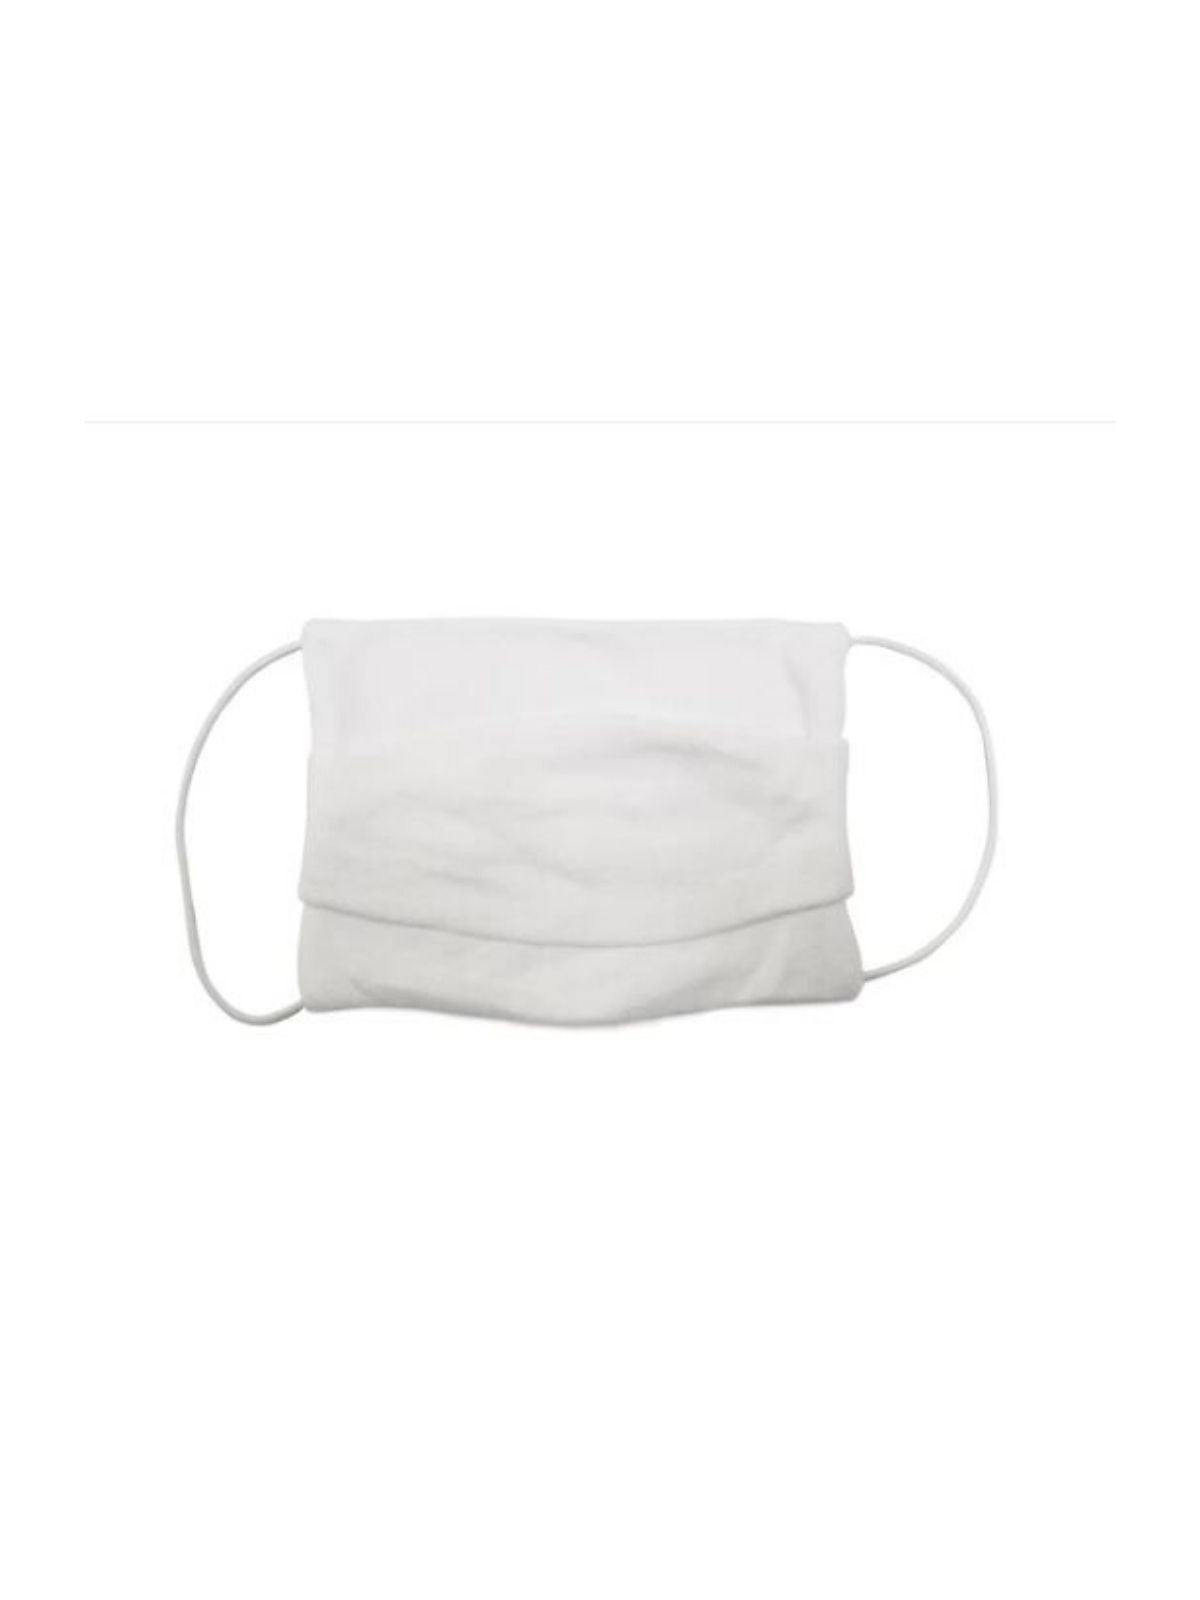 White Mask (Pack of 2)